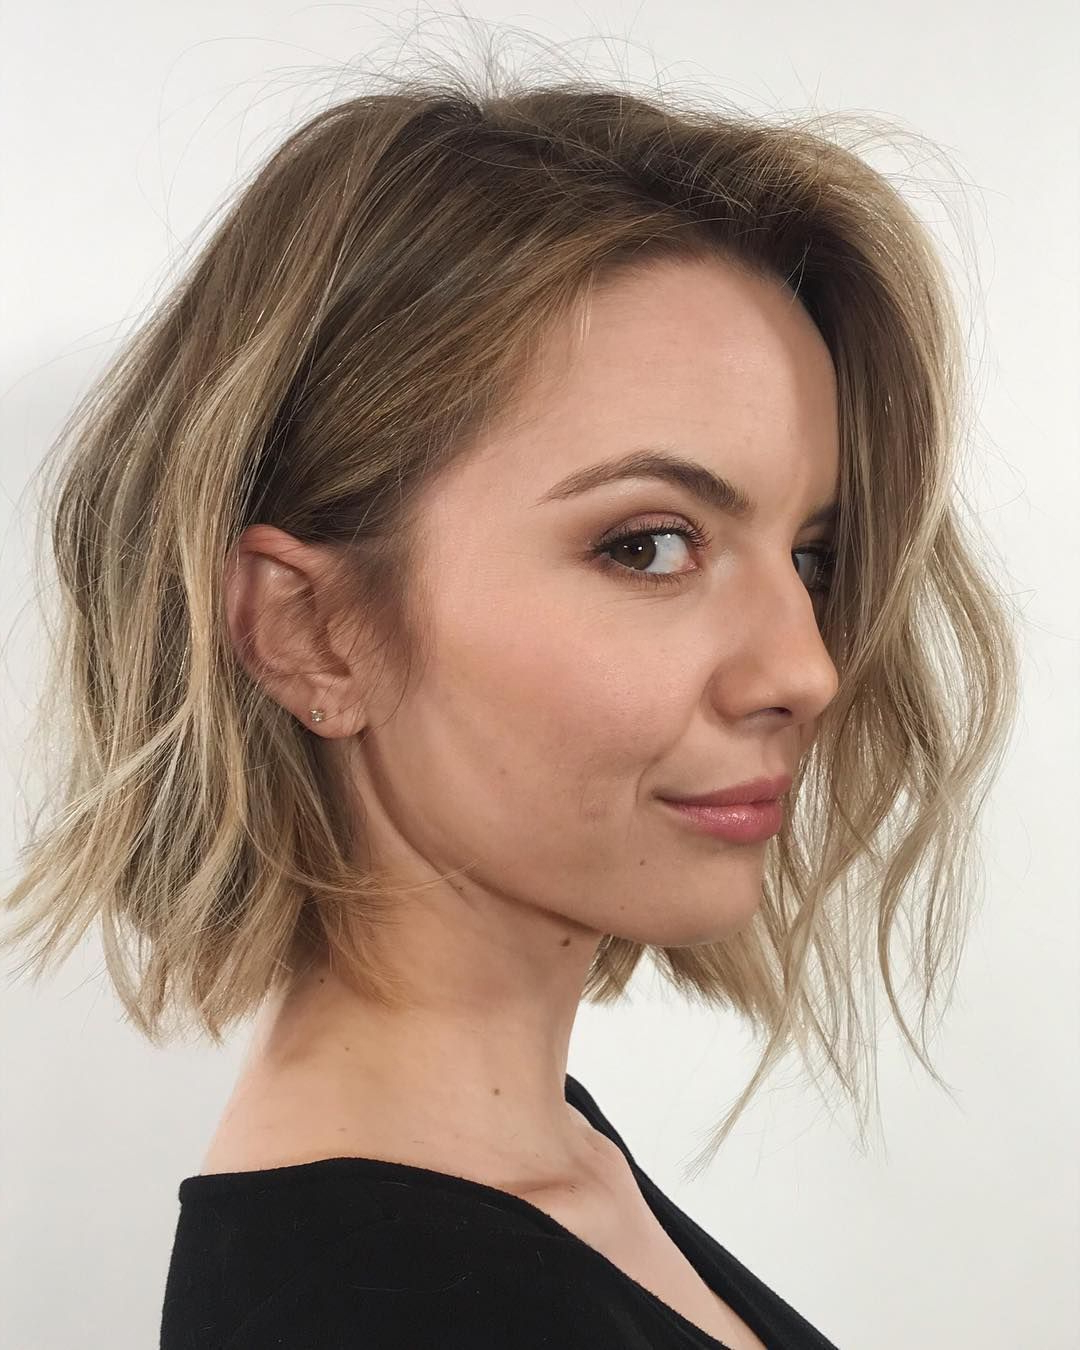 Haircuts For Fine Pertaining To Well Known Subtle Face Framing Layers Hairstyles (View 14 of 20)